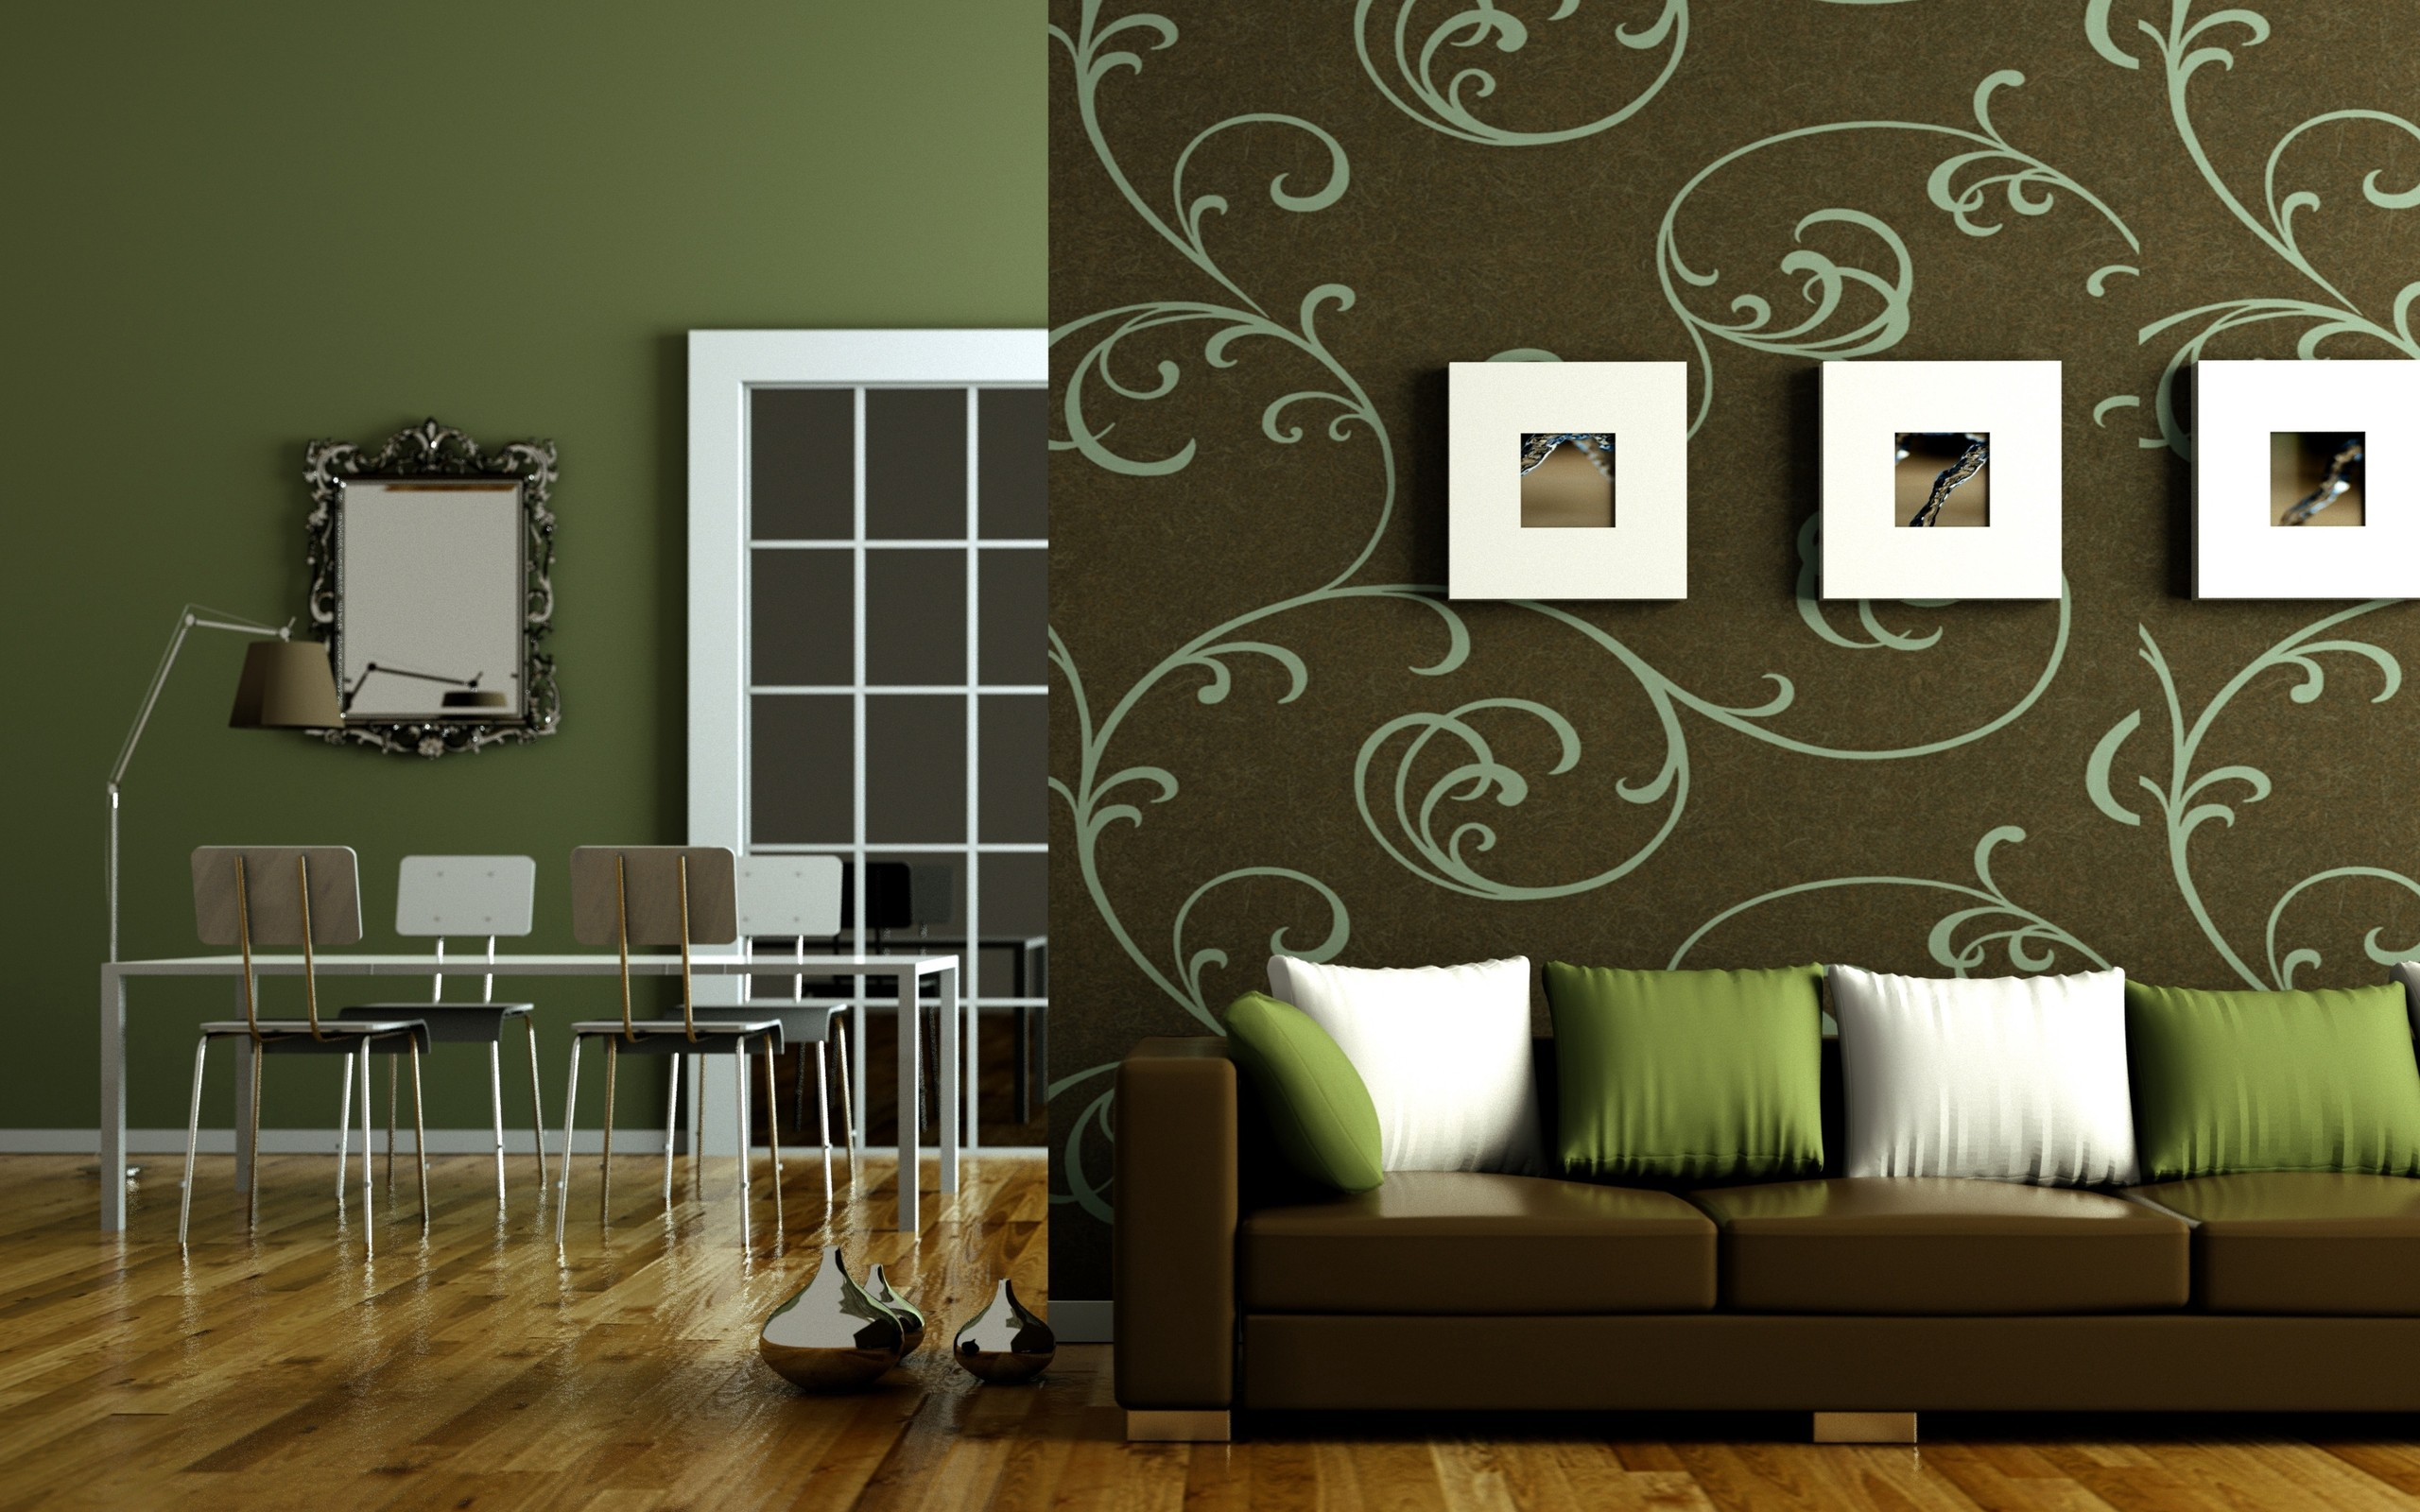 Why Using Wallpapers Have Become An Interior Designing Vogue By Hamza Asif Medium,Simple Cotton Saree Blouse Neck Designs Images